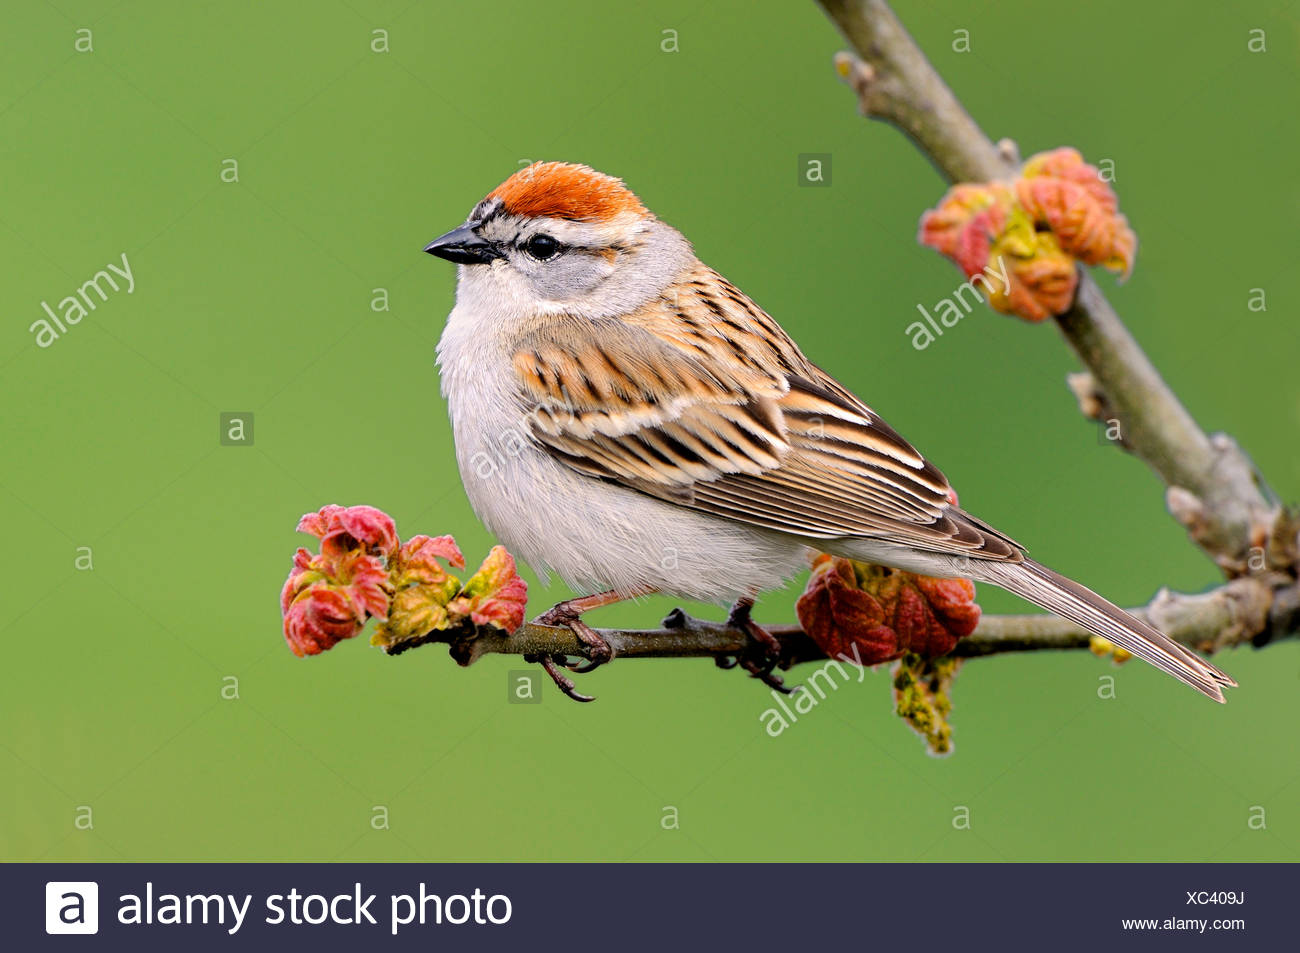 Chipping sparrow (Spizella passerina) on perch at Mount Tolmie Park, Saanich, British Columbia, Canada - Stock Image